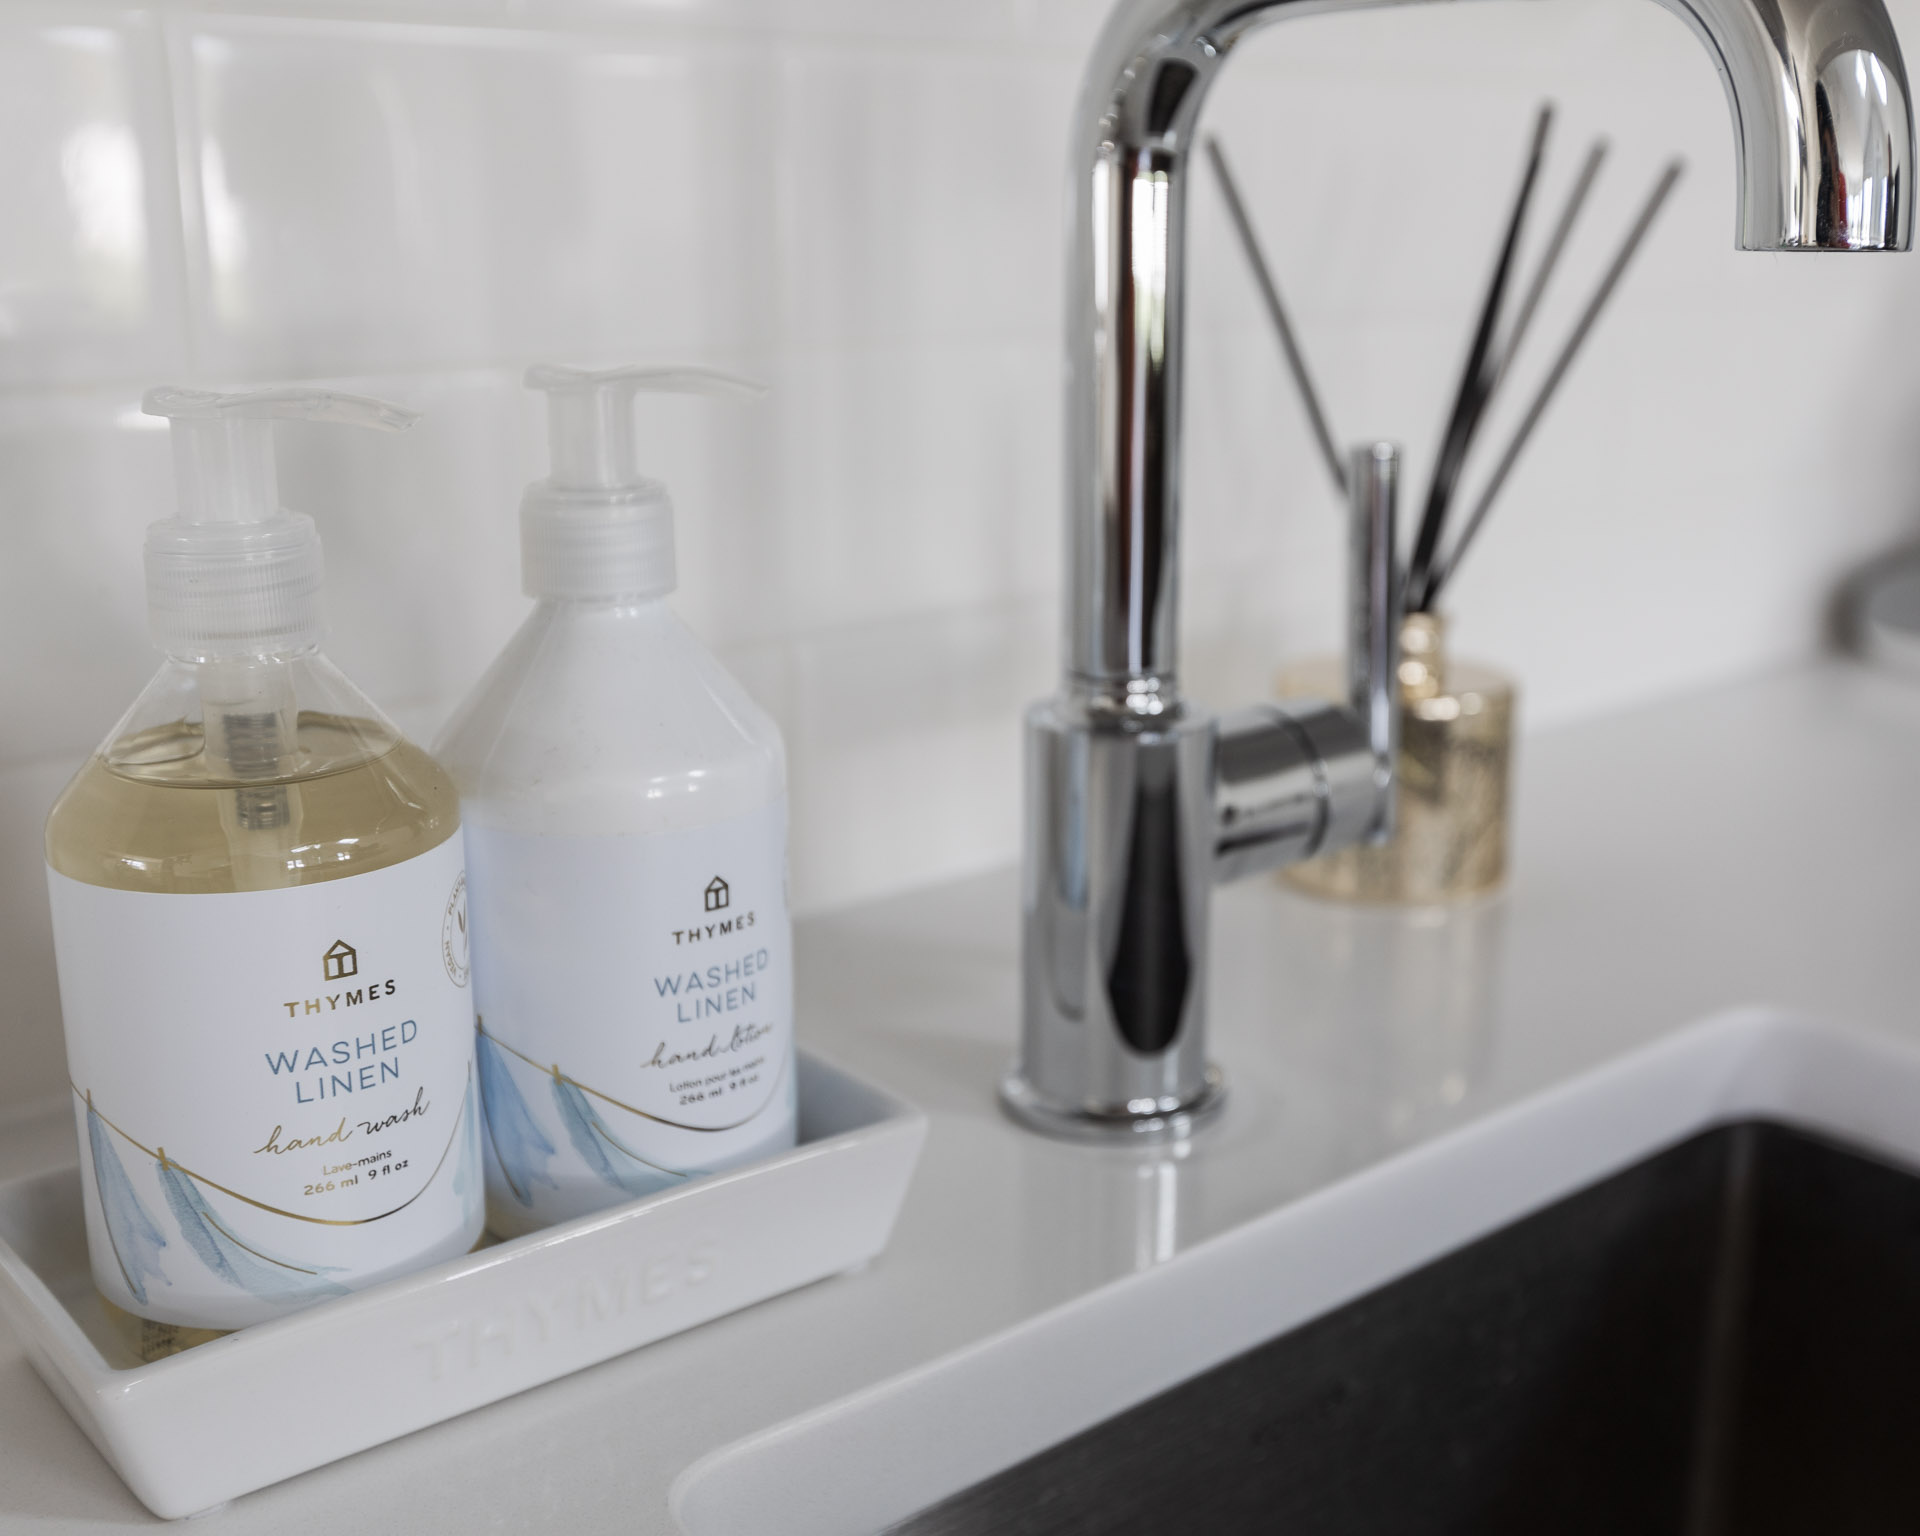 thymes-ffresh-linen-scented-soap-and-moisturizer-the-glamorous-gal